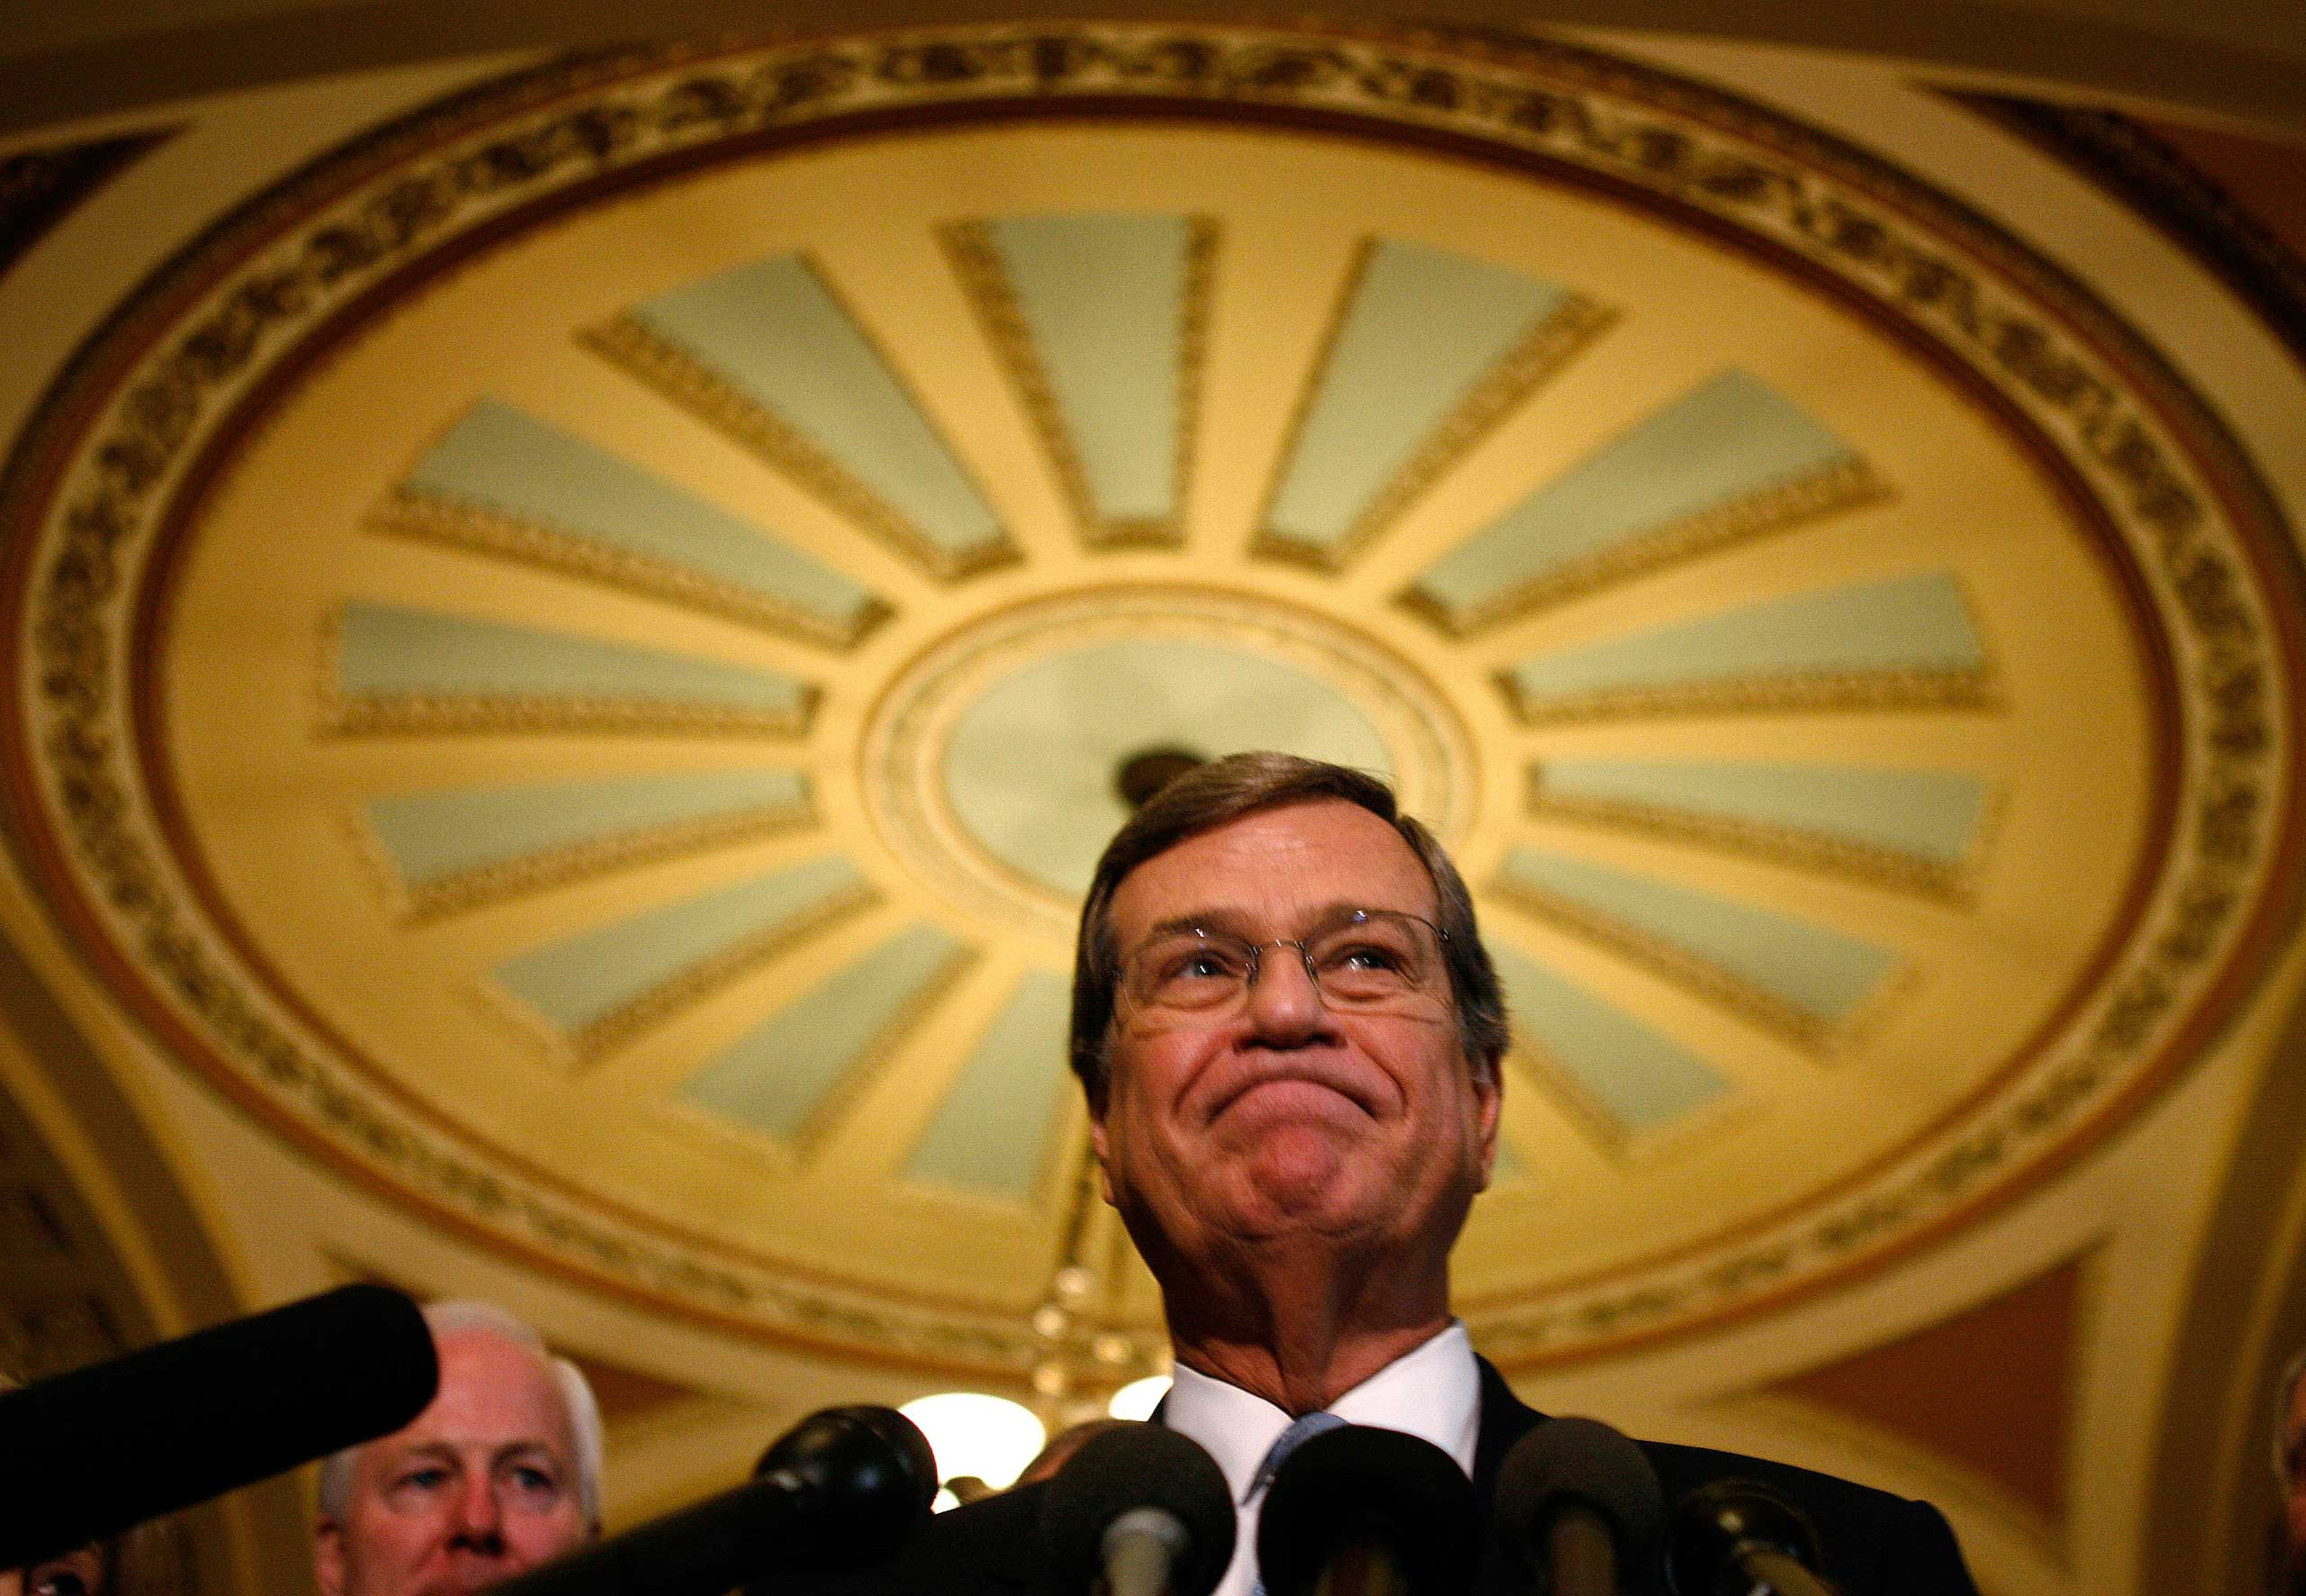 Mississippi Sen. Trent Lott resigned as the Senate majority leader in 2002 after he made comments supporting the segregationist 1948 presidential campaign of Strom Thurmond. But Lott made a comeback five years later when he was elected minority whip.